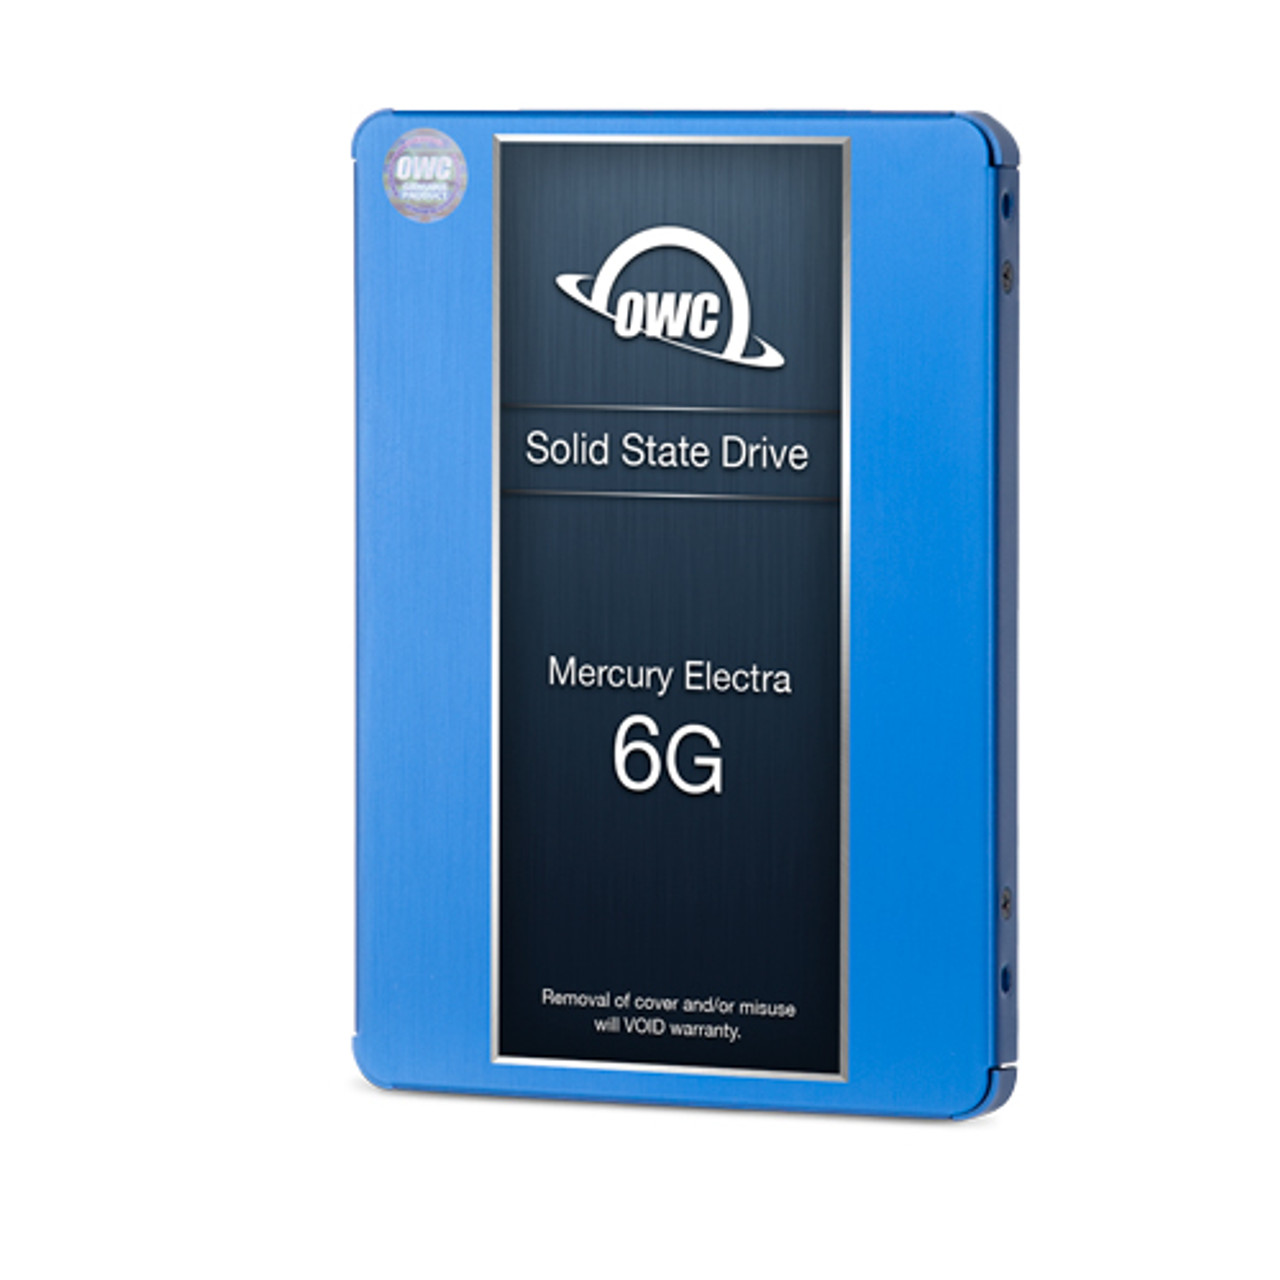 2TB OWC 6G SSD and OWC Accelsior S PCIe to 2.5-inch adapter bundle